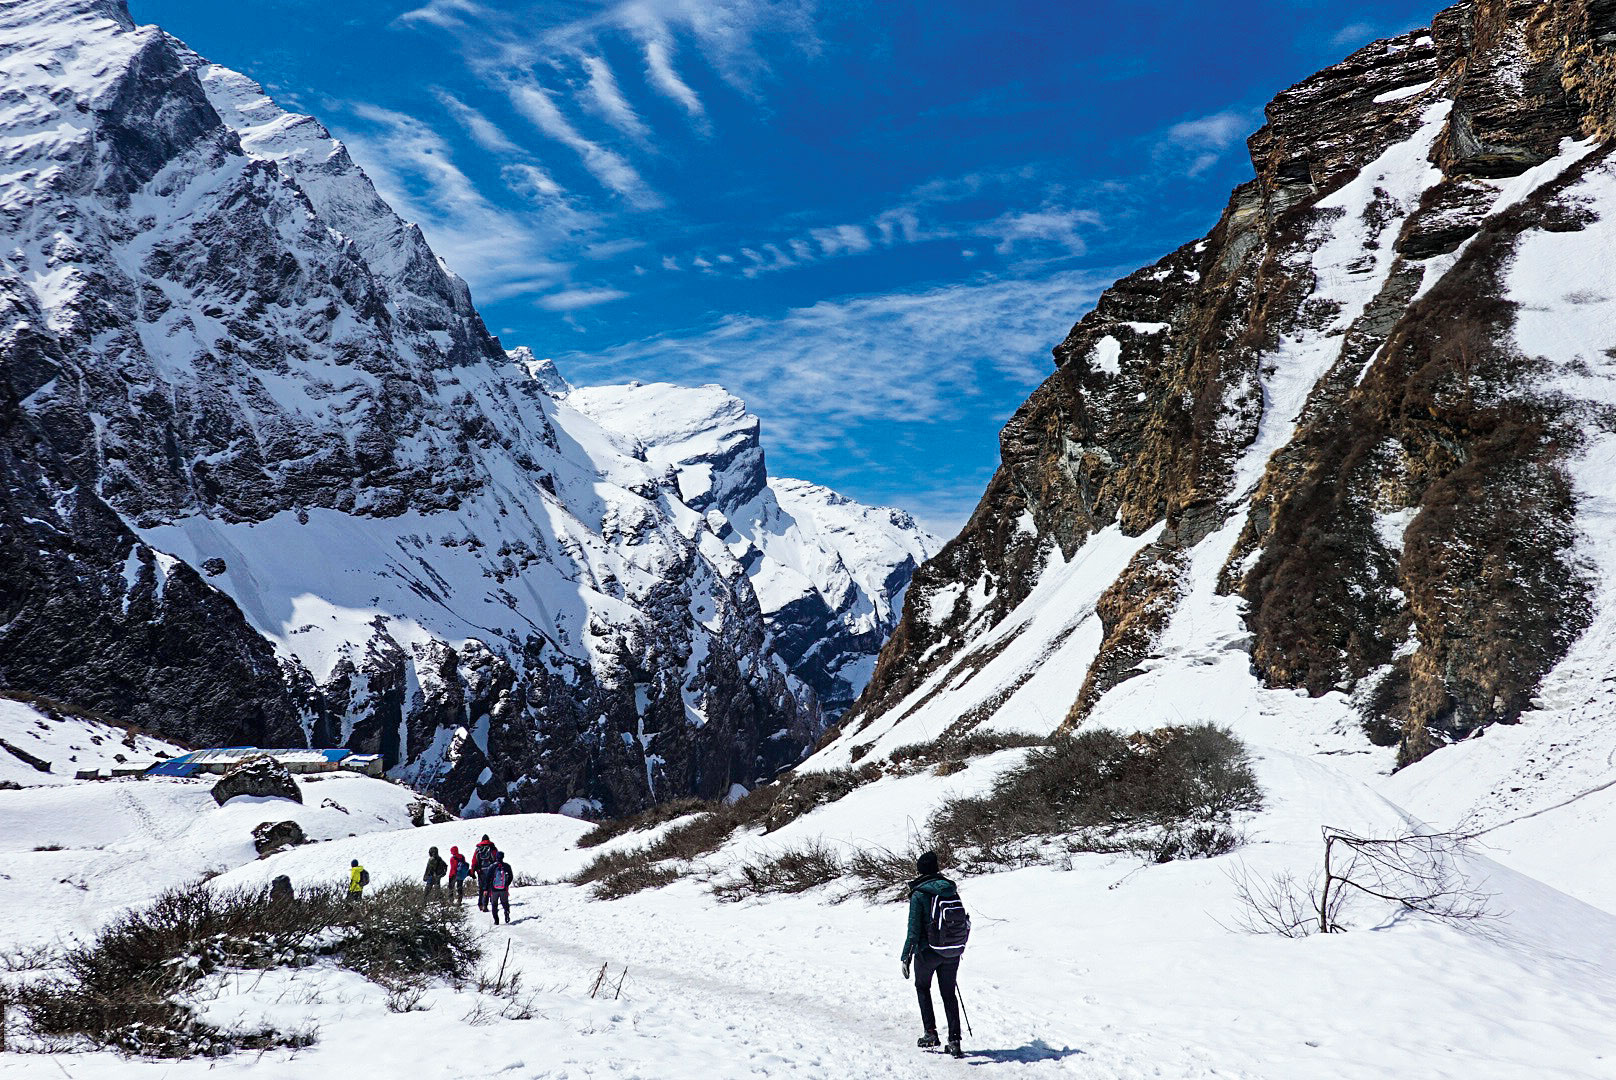 Snowfall makes the landscape stunning, but the trek gets very strenuous